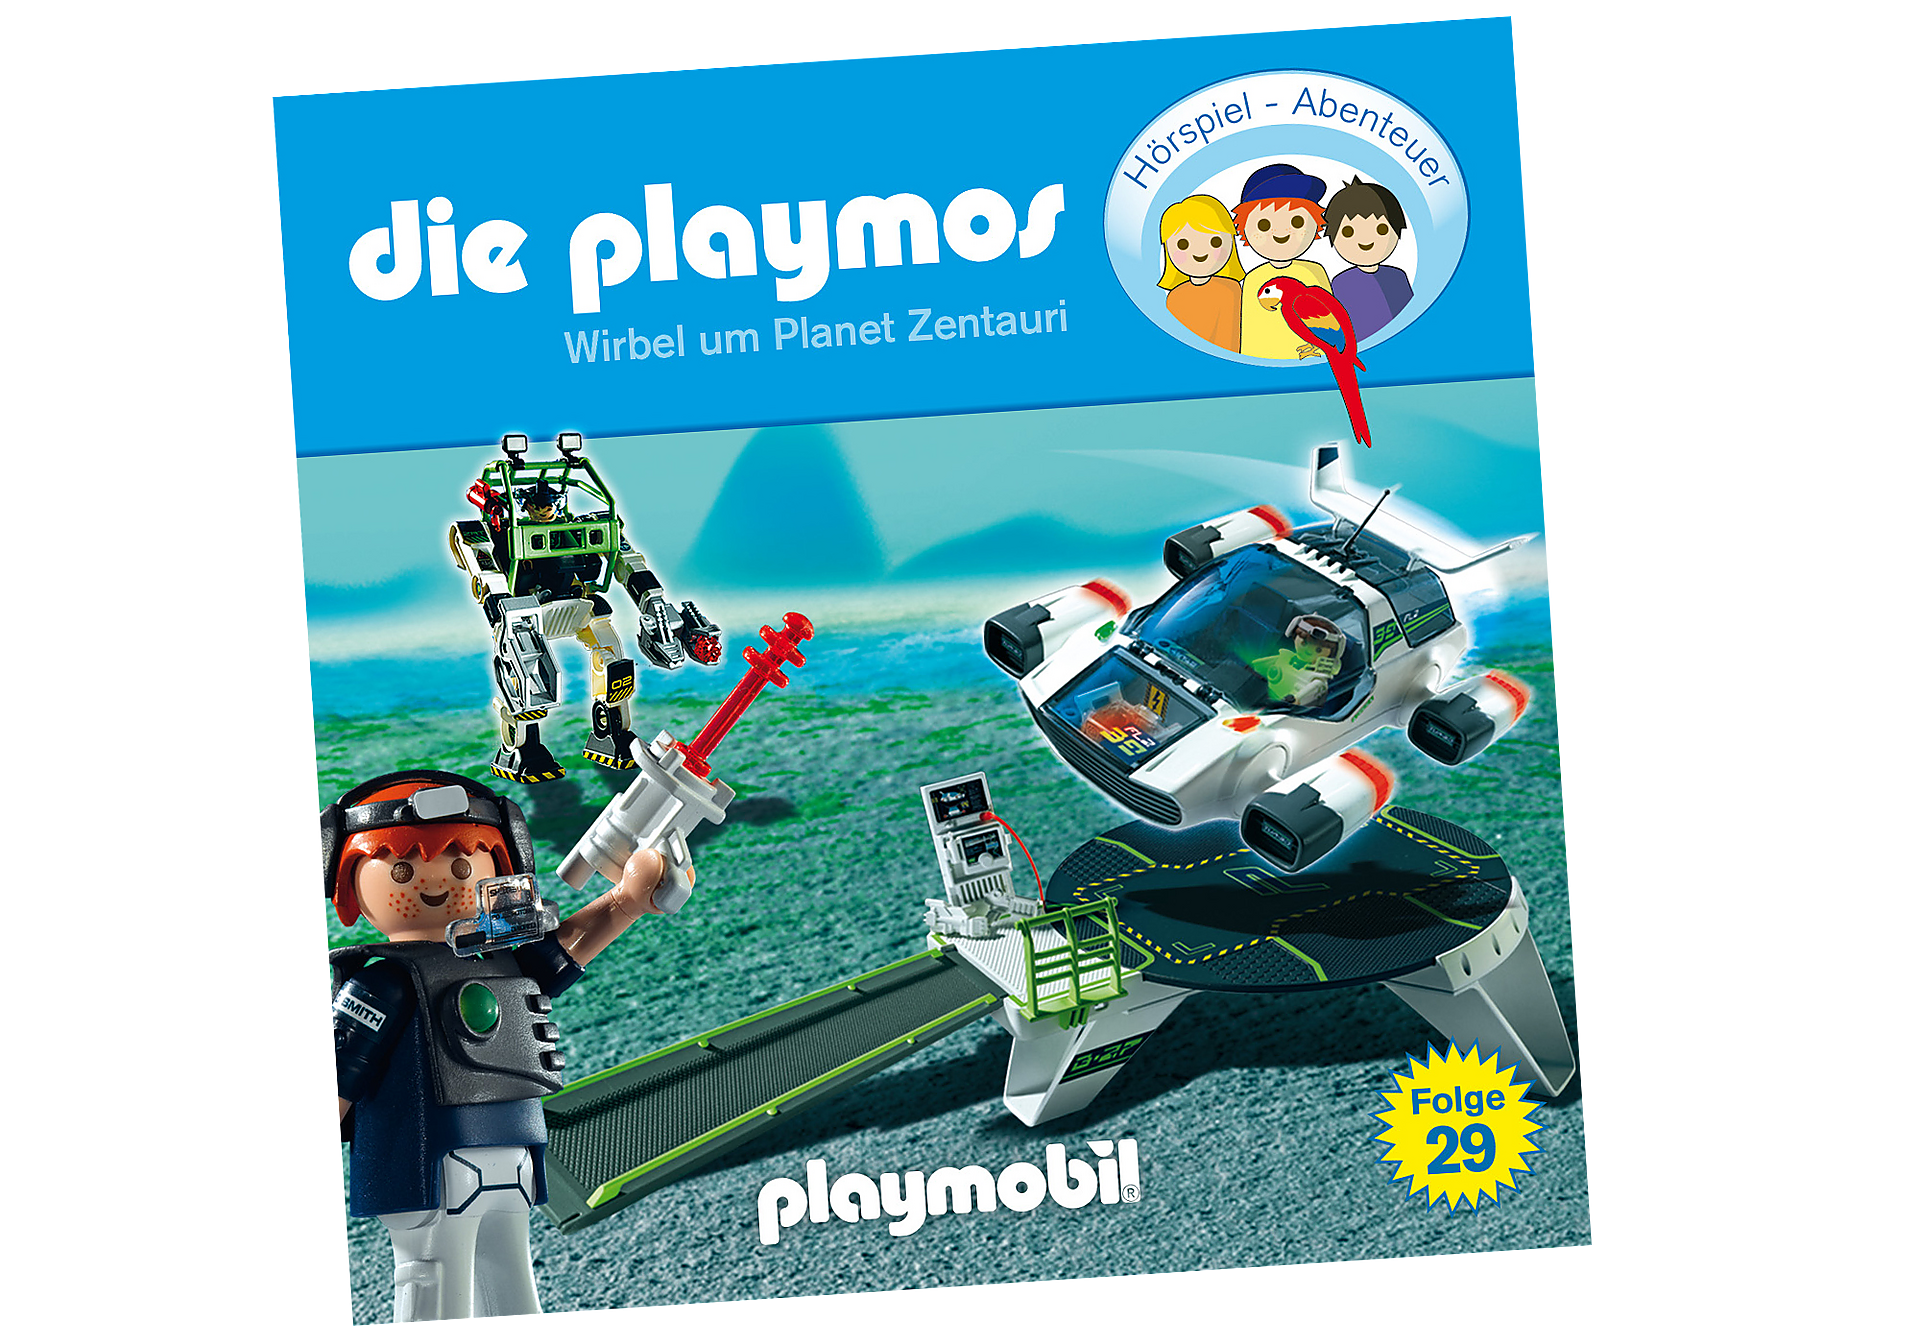 http://media.playmobil.com/i/playmobil/80345_product_detail/Wirbel um Planet Zentauri (29) - CD